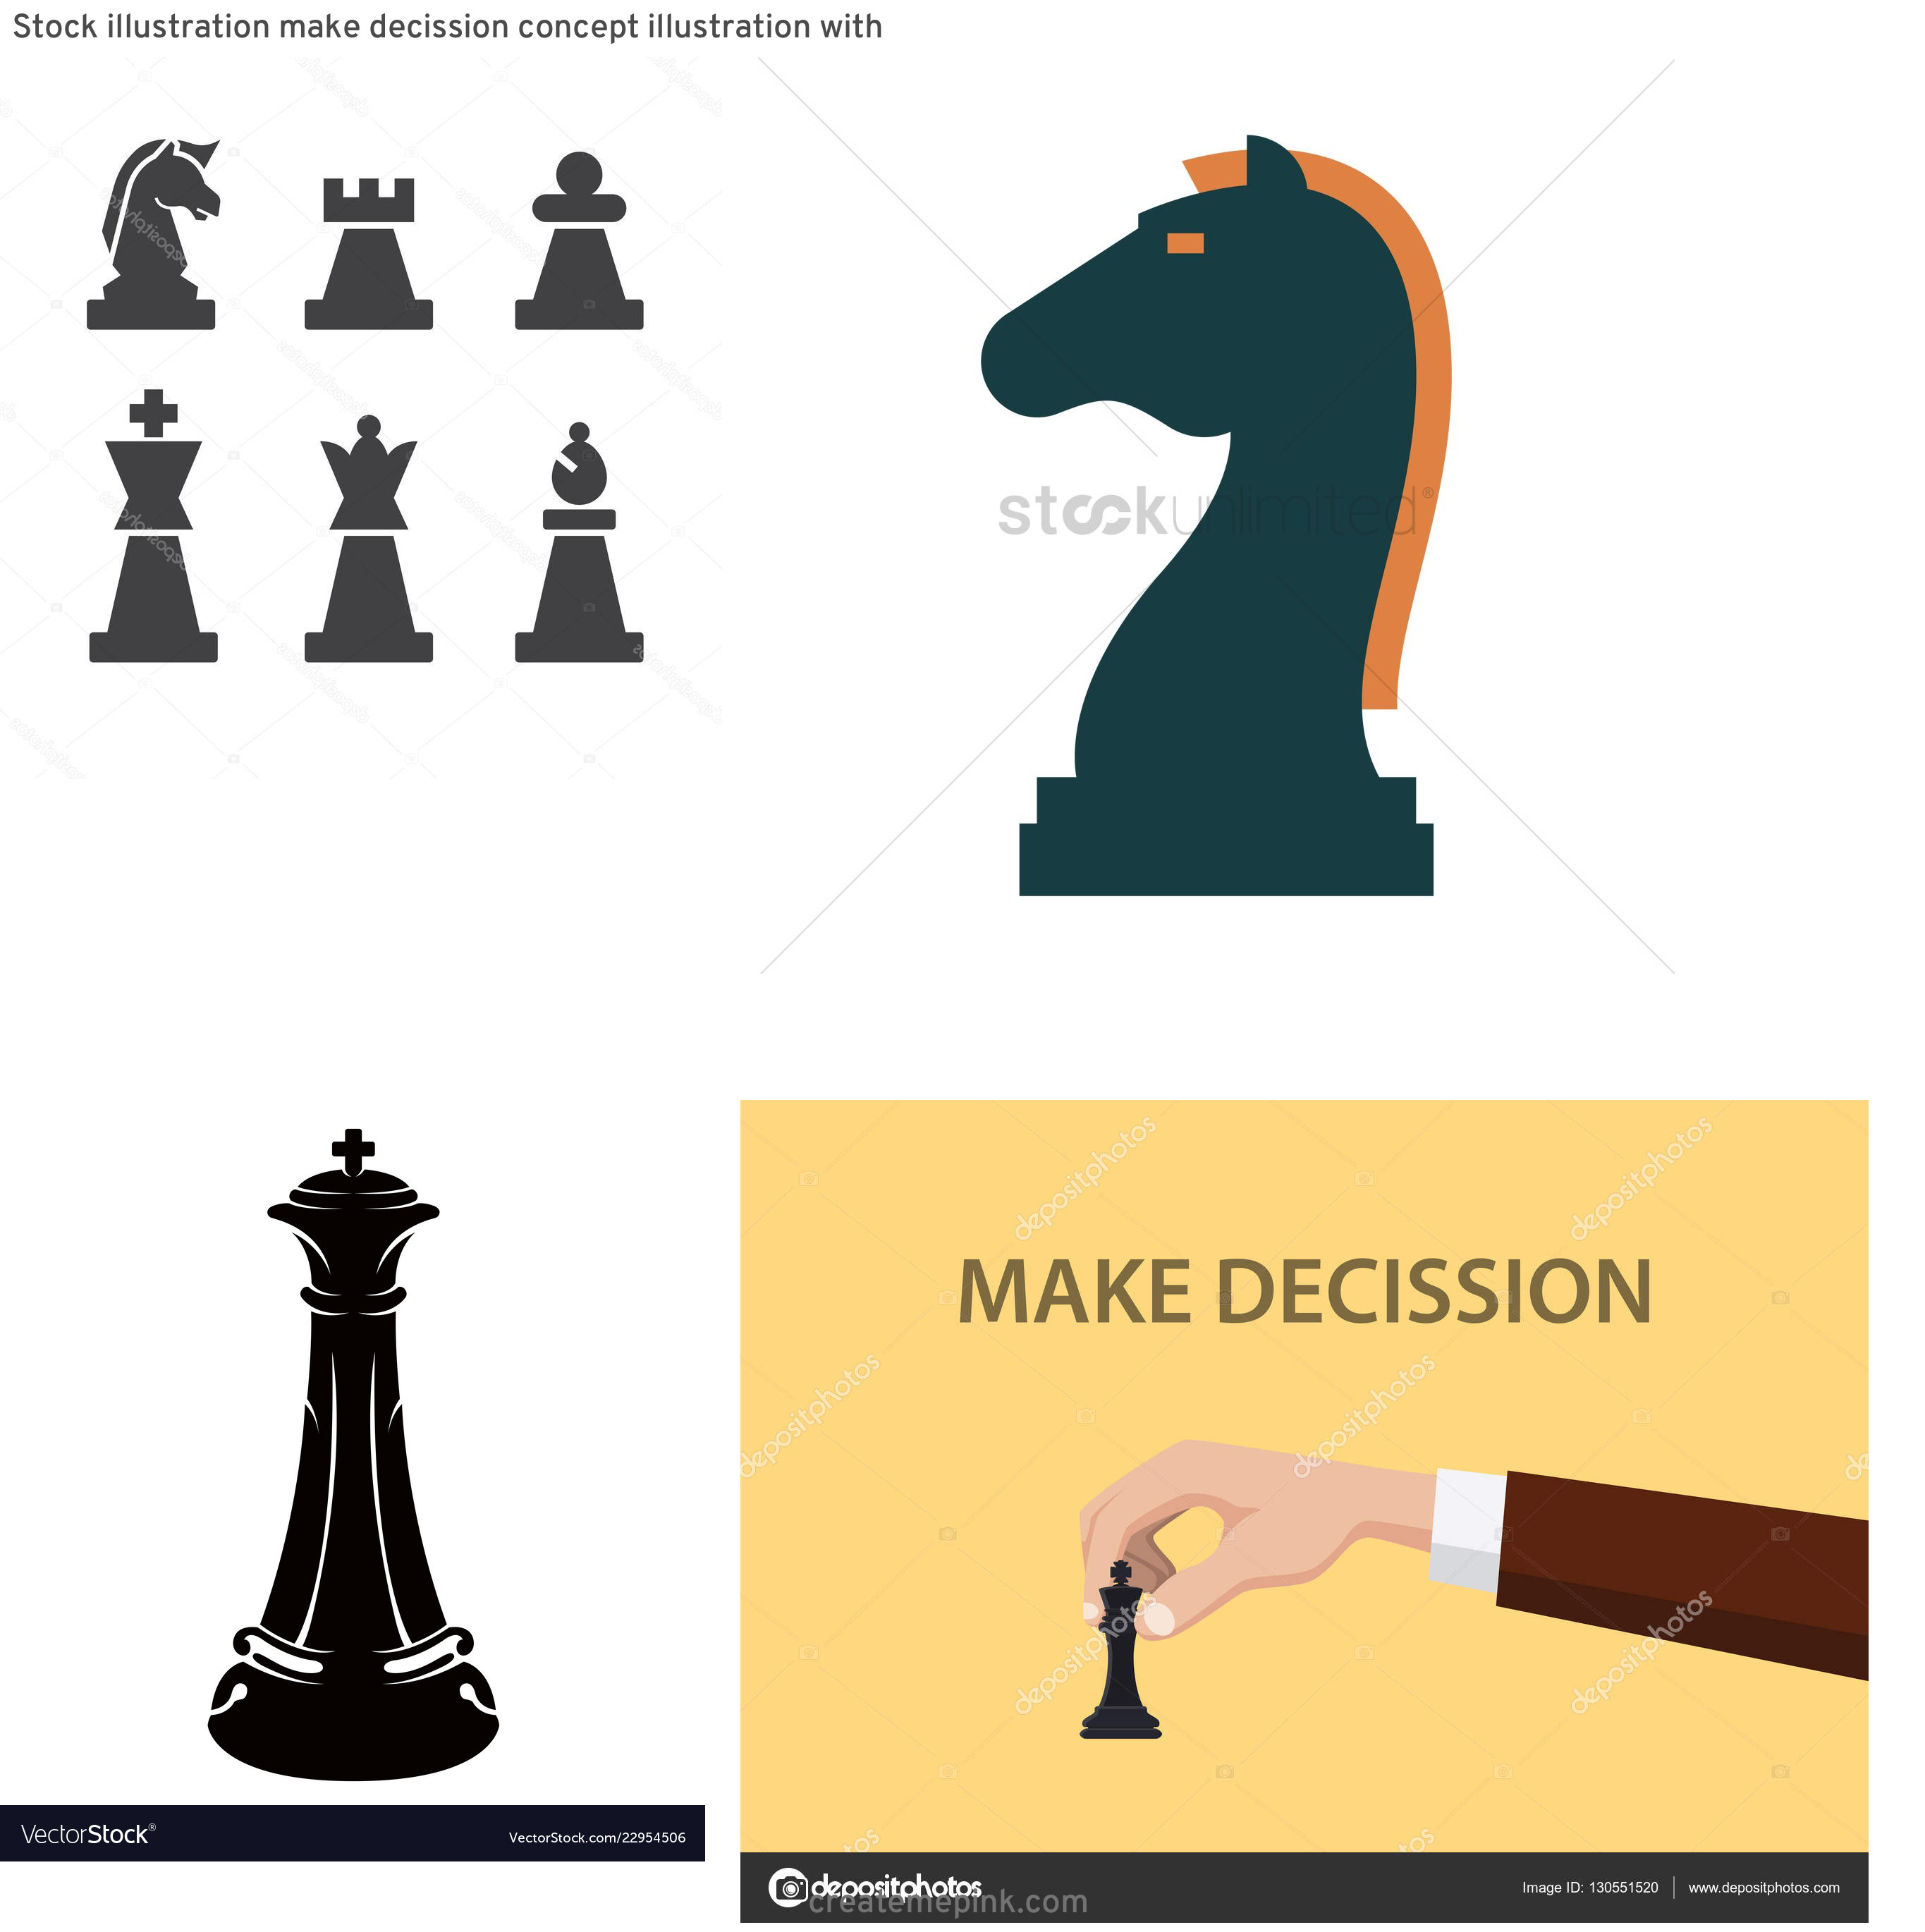 Chess Vector Graphic: Stock Illustration Make Decission Concept Illustration With